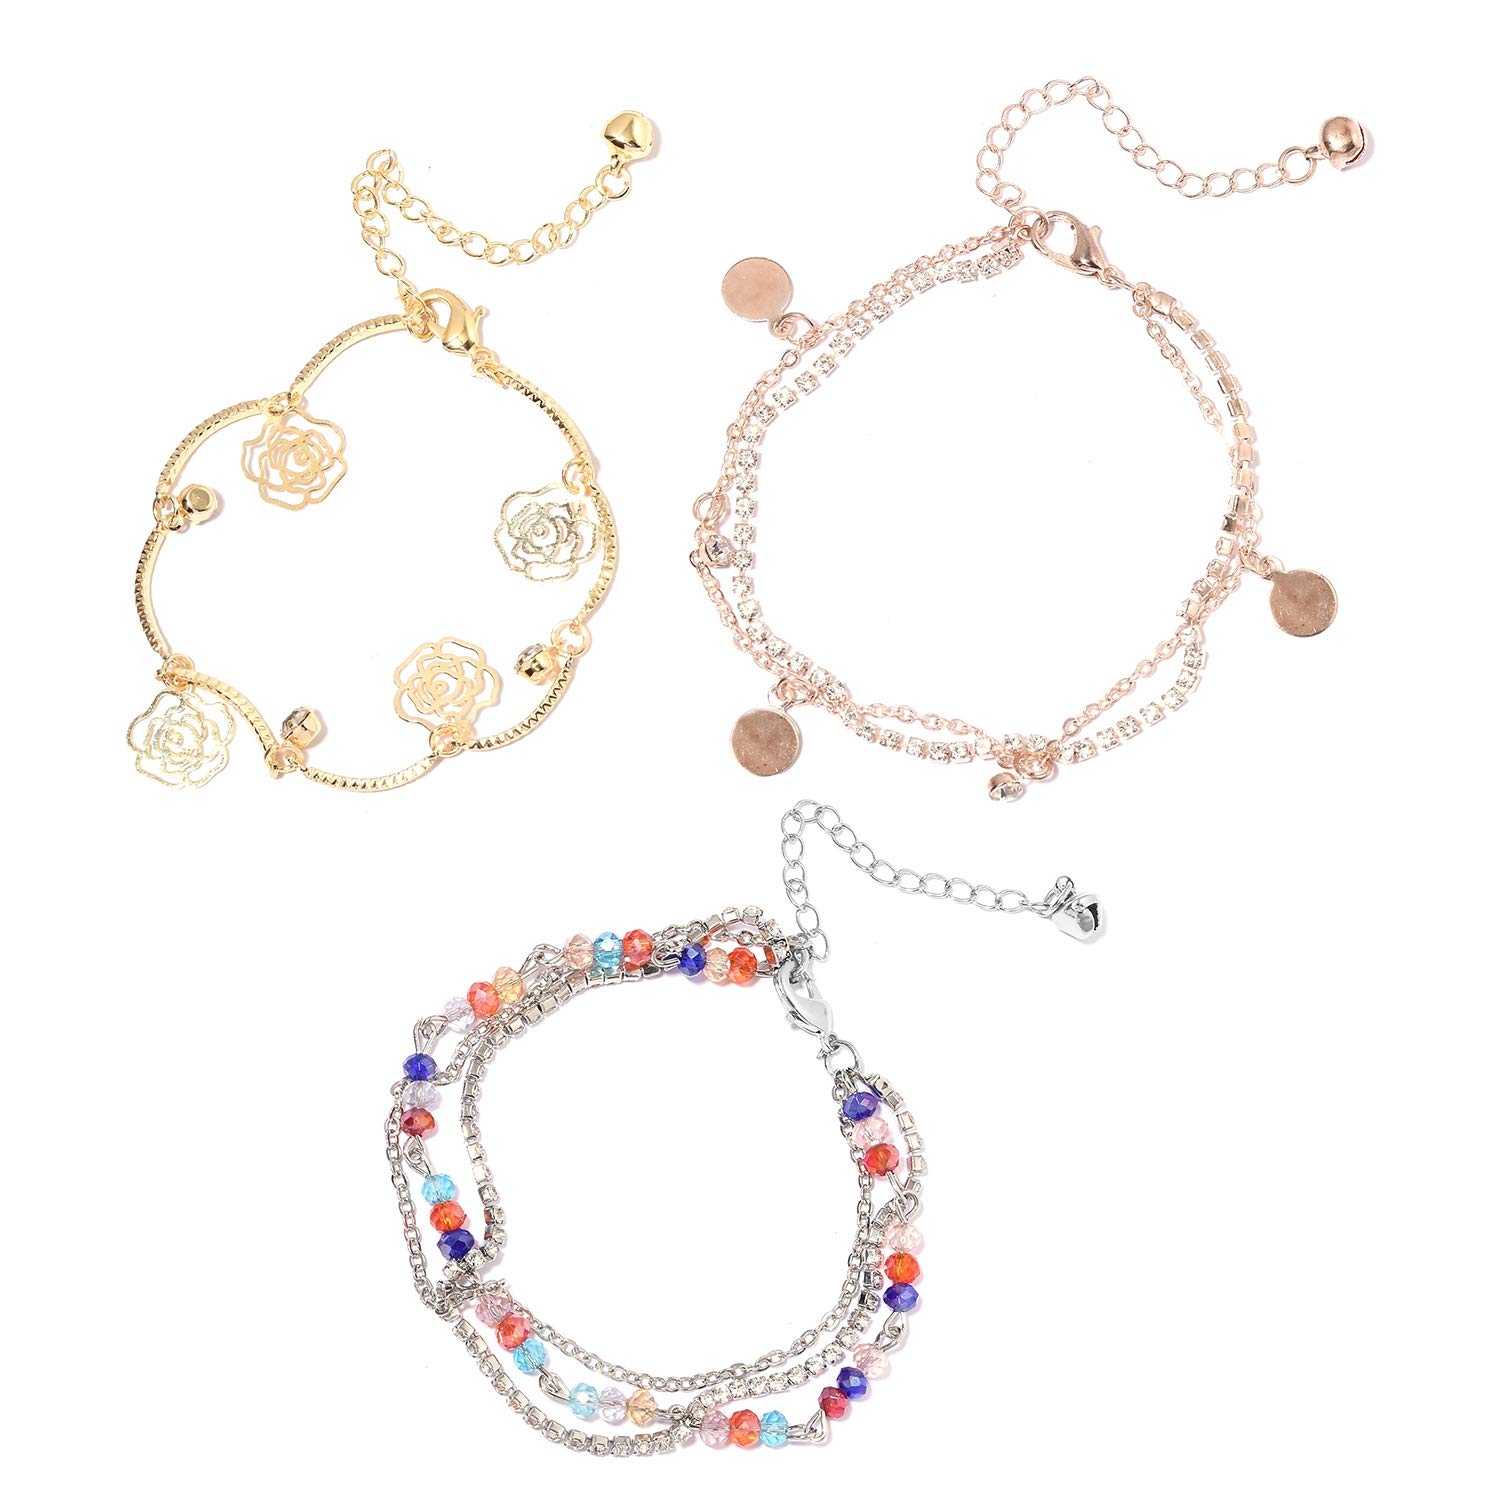 Shop LC 100Ir Natural Iron Beads Multi Color Glass White Crystal Fashion Anklet for Women